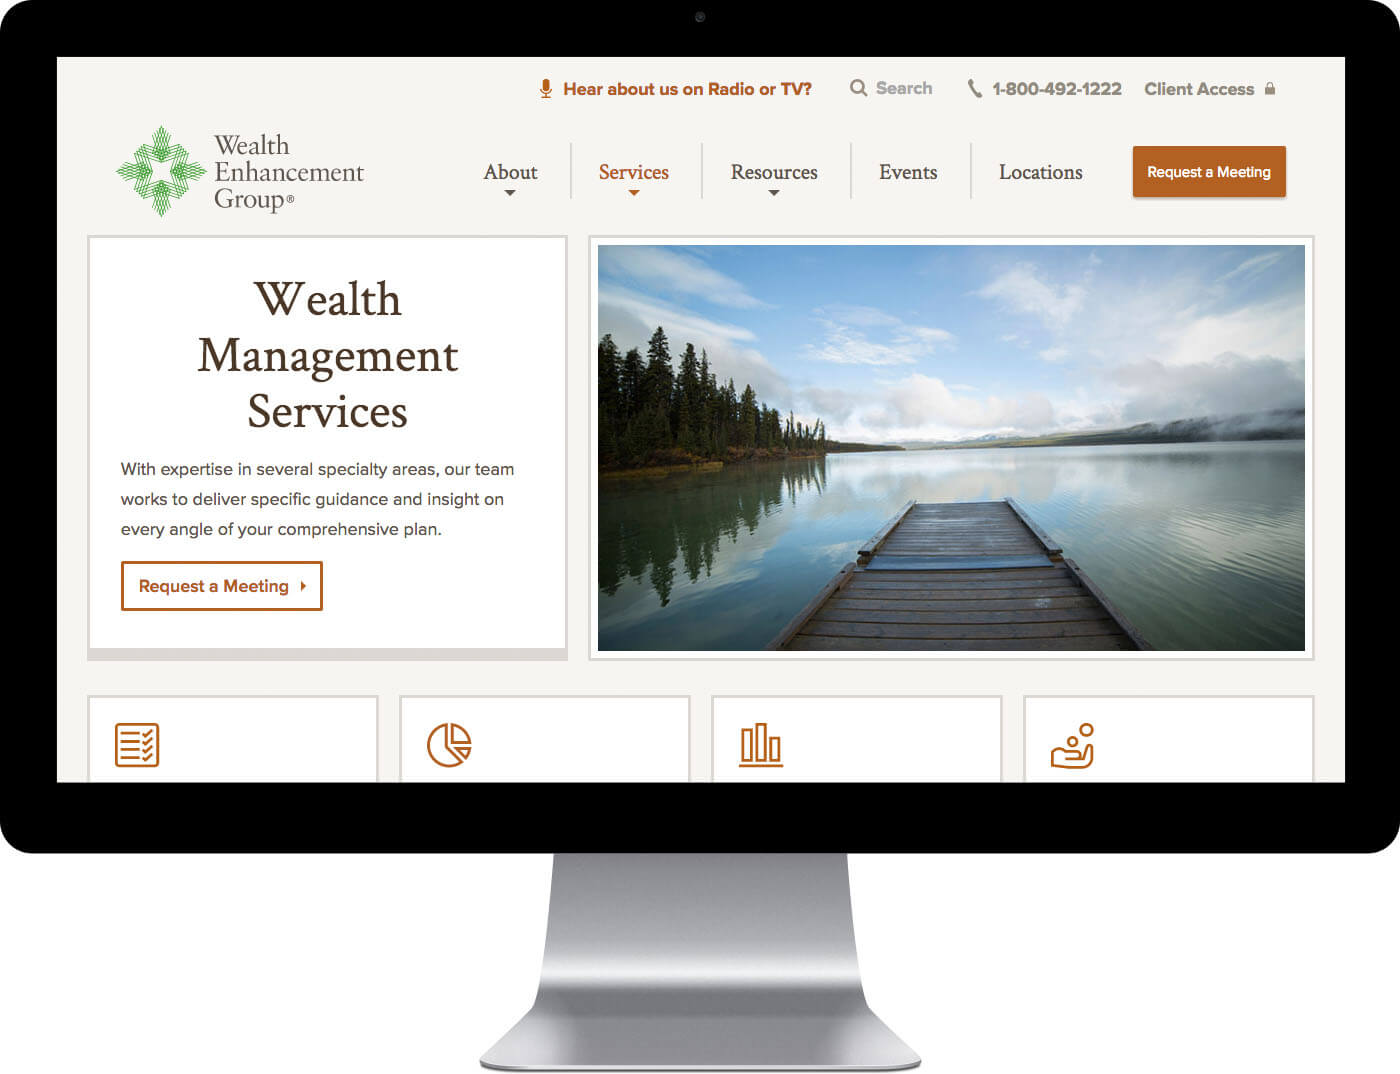 Wealth Enhancement Group Website Design on Desktop Monitor